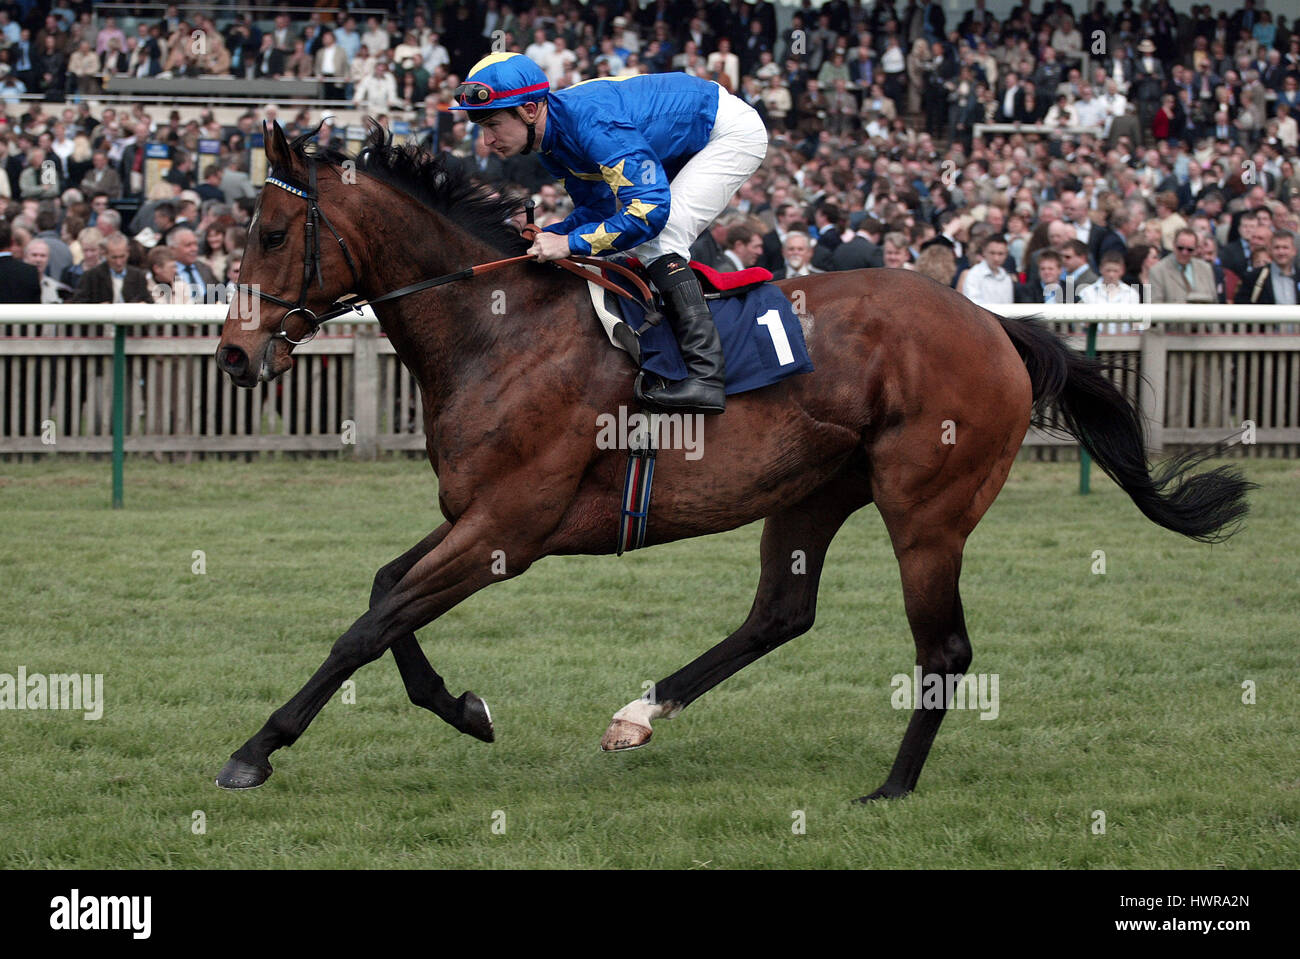 BORDER SUBJECT RIDDEN BY S.DROWNE NEWMARKET RACECOURSE NEWMARKET 03 May 2004 - Stock Image